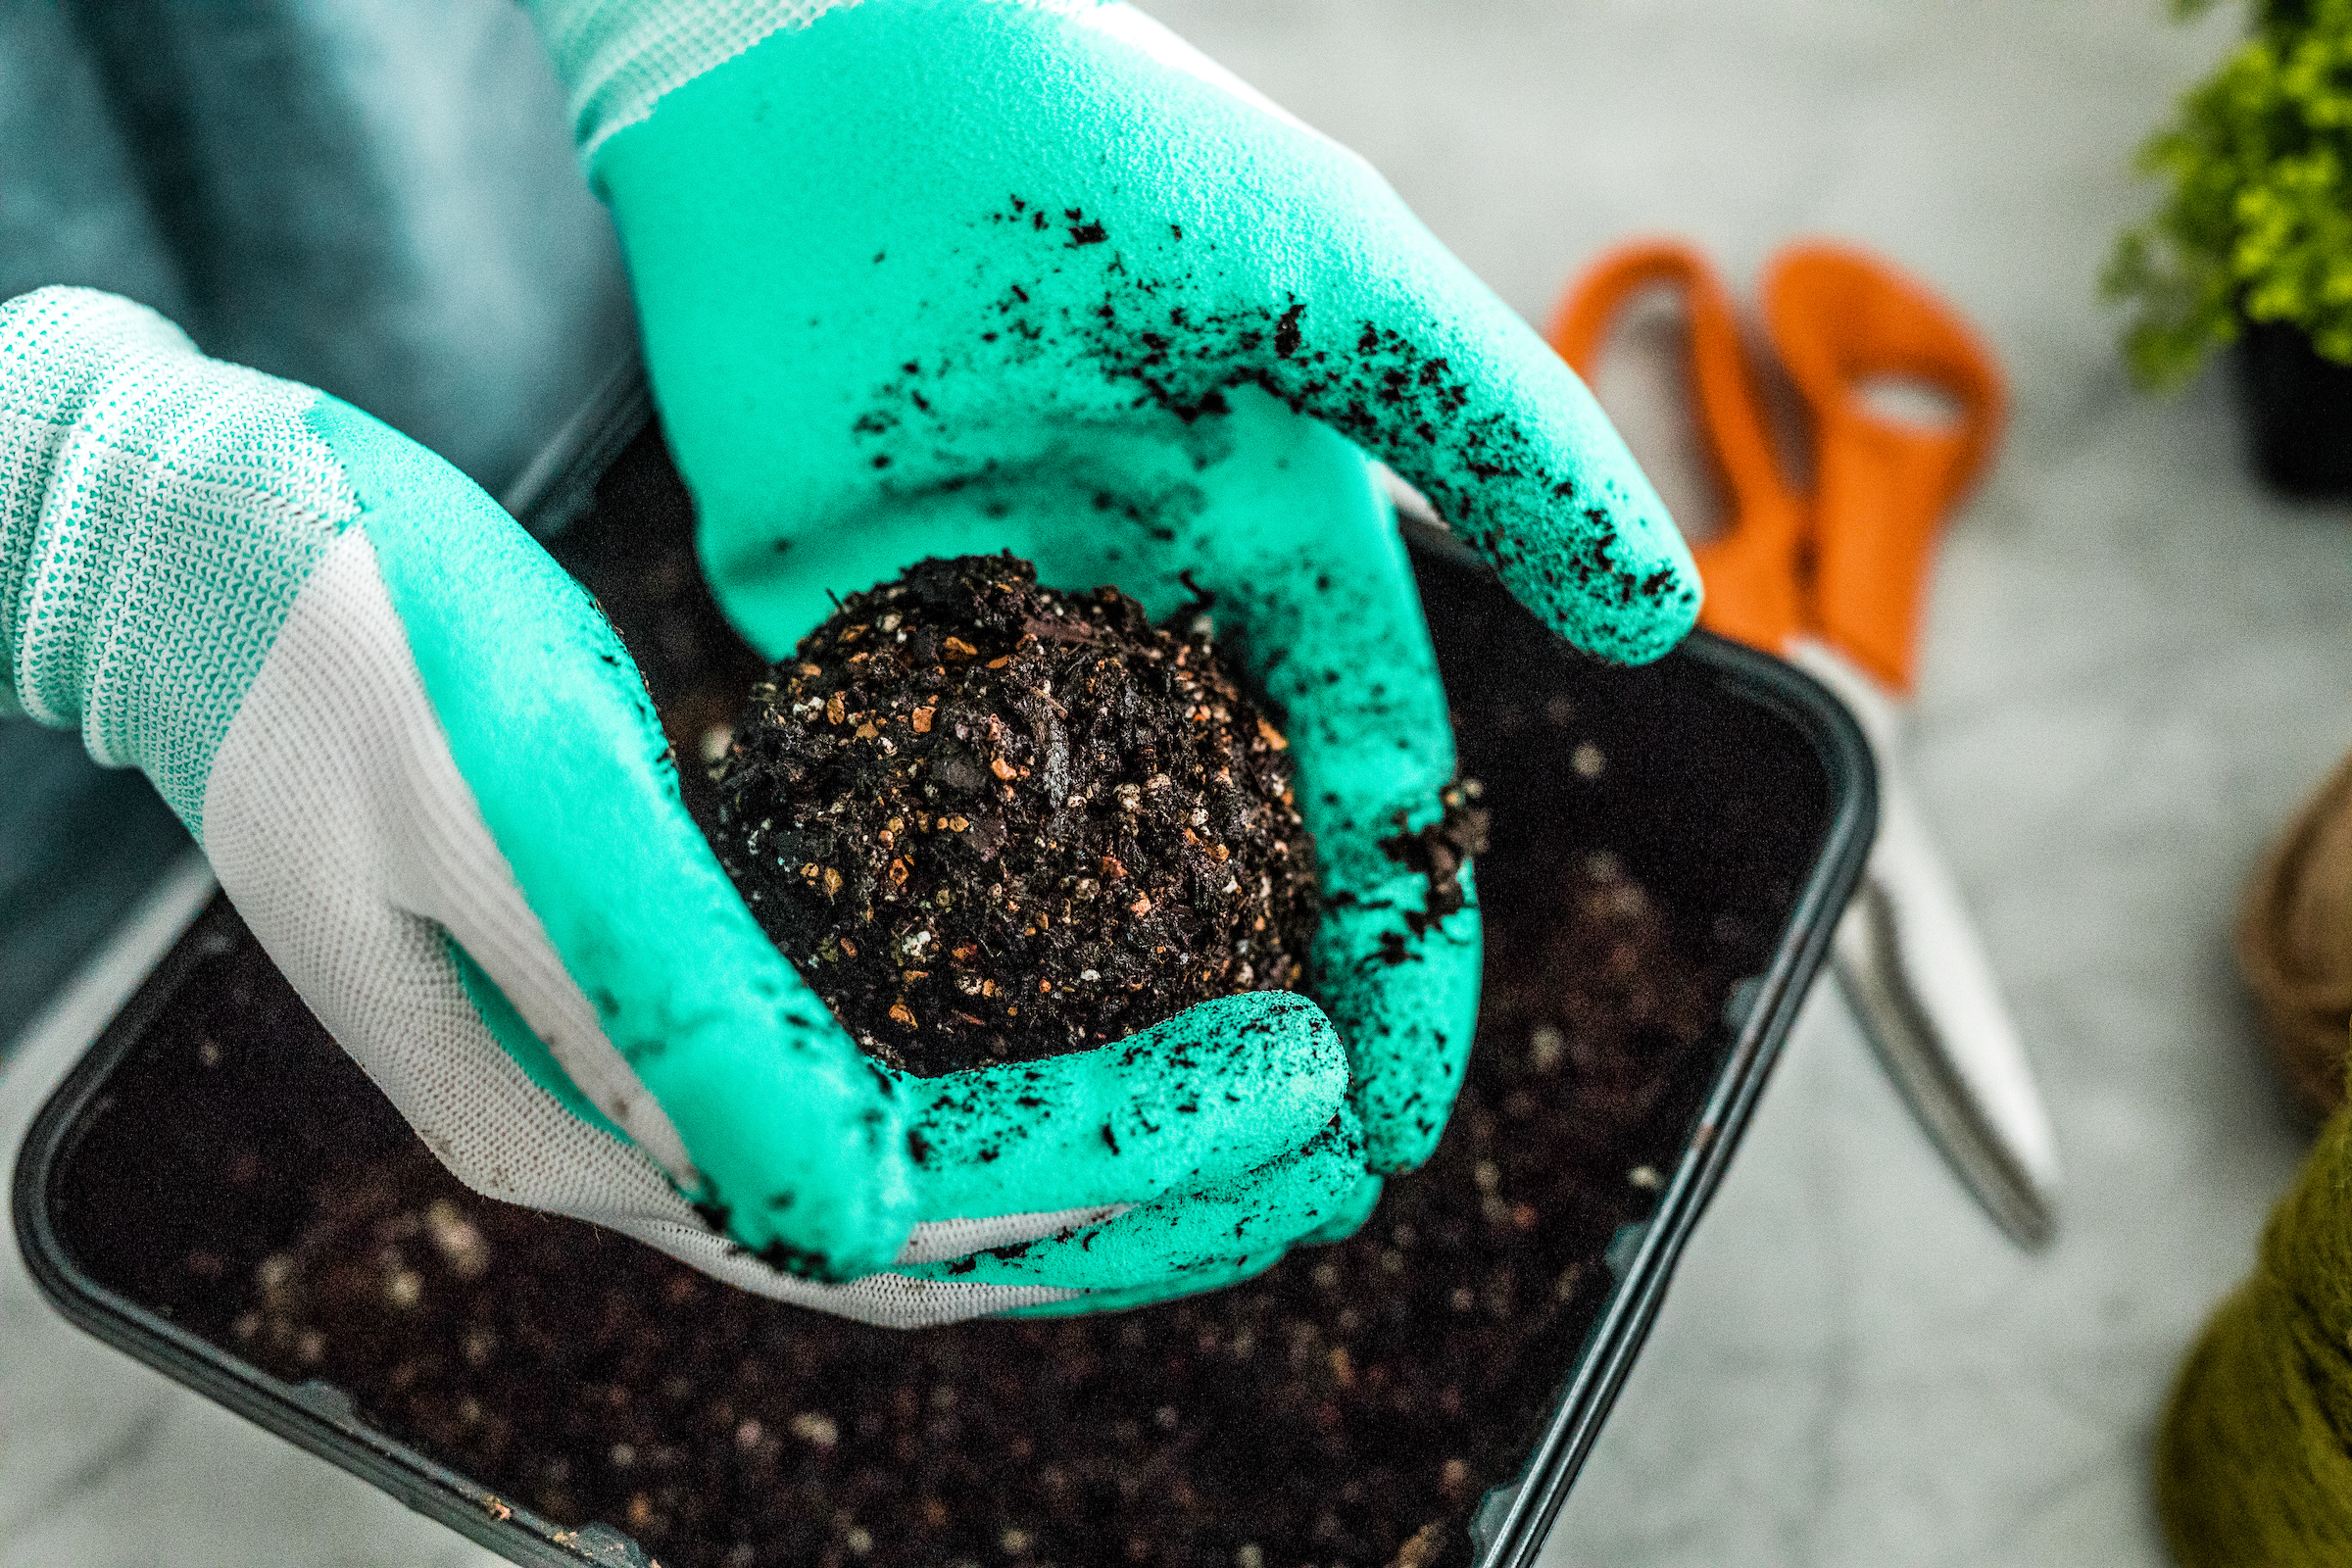 Pour soil into a clean container and add water until soil is damp enough that you can shape it into a sphere about four to eight inches in diameter. (Larger spheres give root systems more room to grow.)